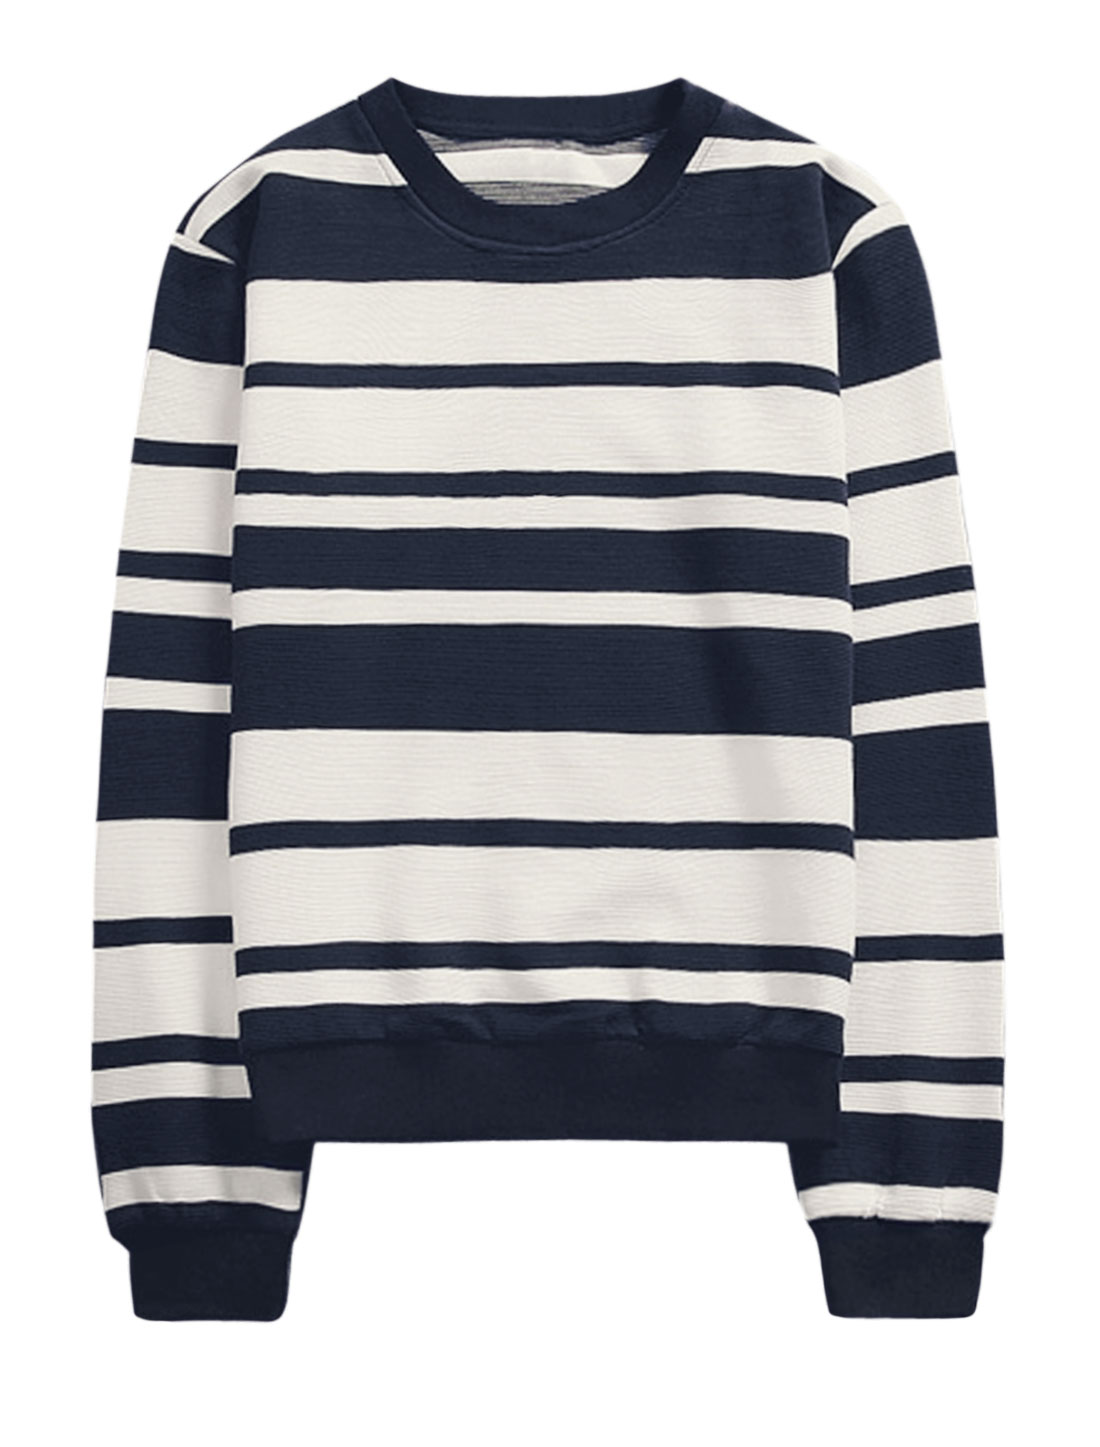 Men Crew Neck Stripes Prints Slipover Long Sleeves Casual Tops Blue White M